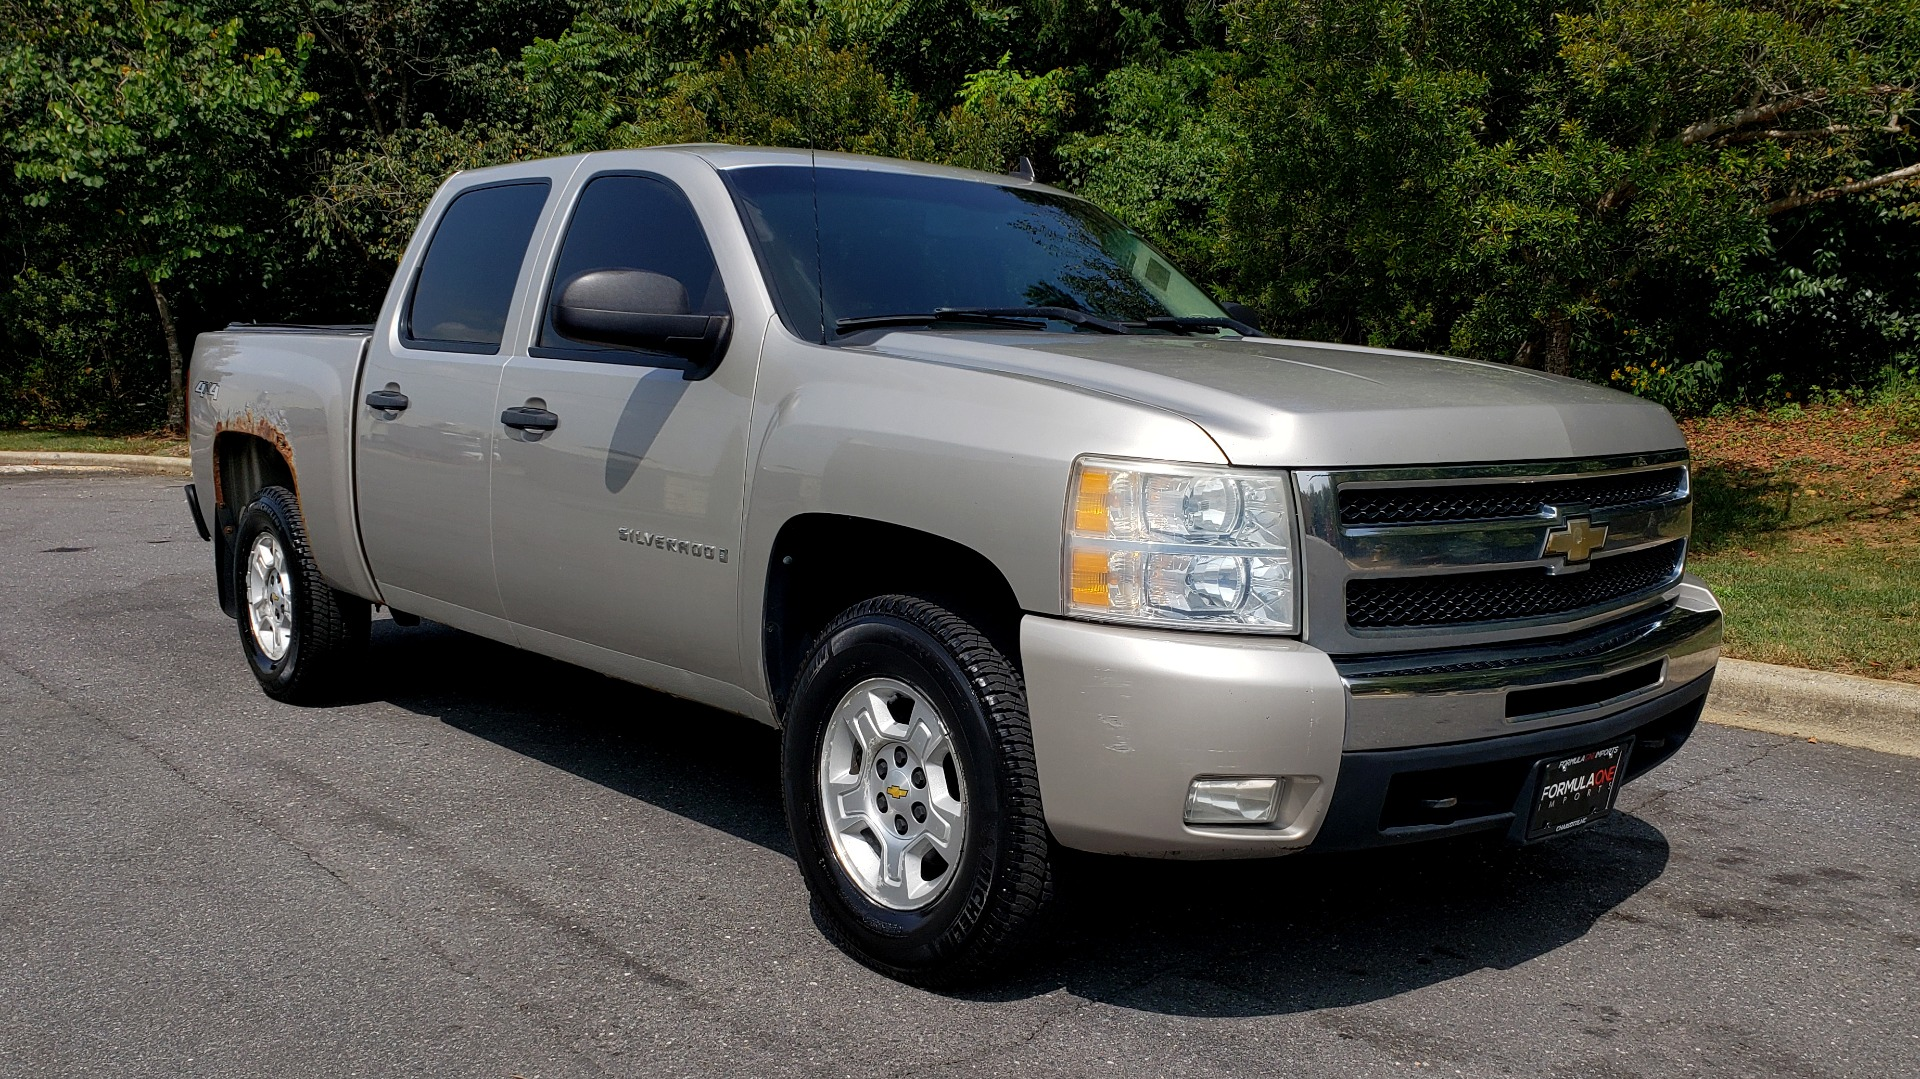 Used 2009 Chevrolet SILVERADO 1500 LT / CREWCAB / 5.3L V8 / 4WD / TRAILER PKG / REARVIEW for sale $10,595 at Formula Imports in Charlotte NC 28227 4